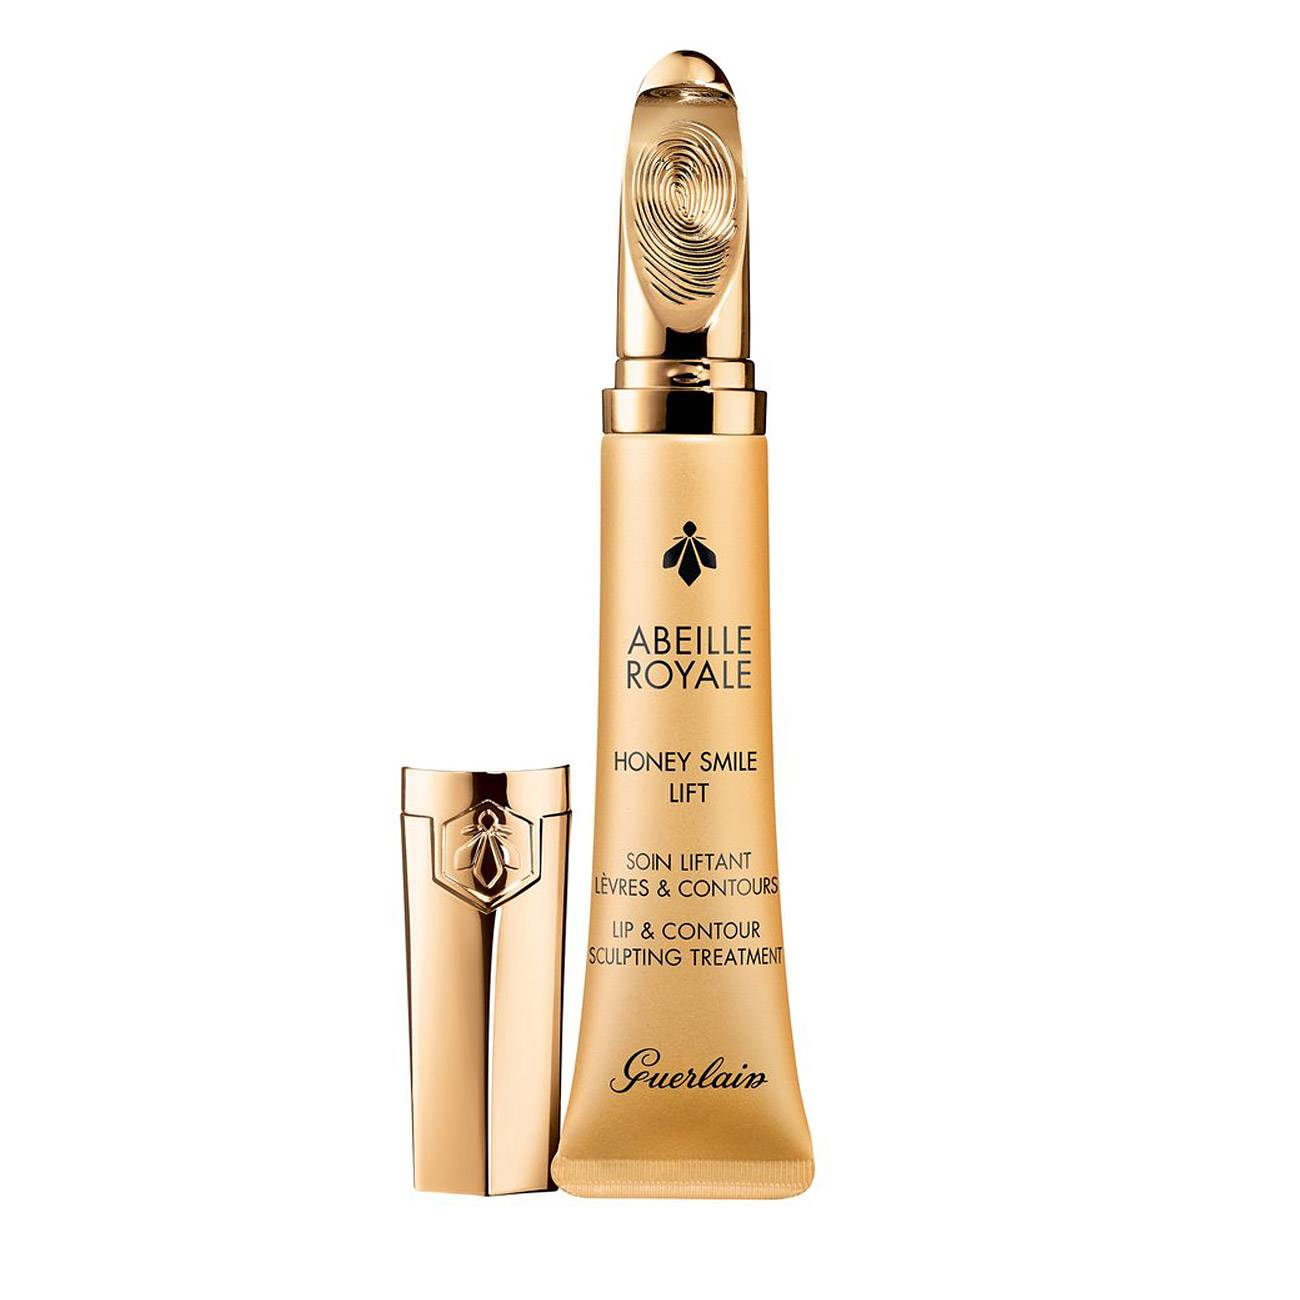 Abeille Royale Honey Smile Lift 15 Ml Guerlain imagine 2021 bestvalue.eu